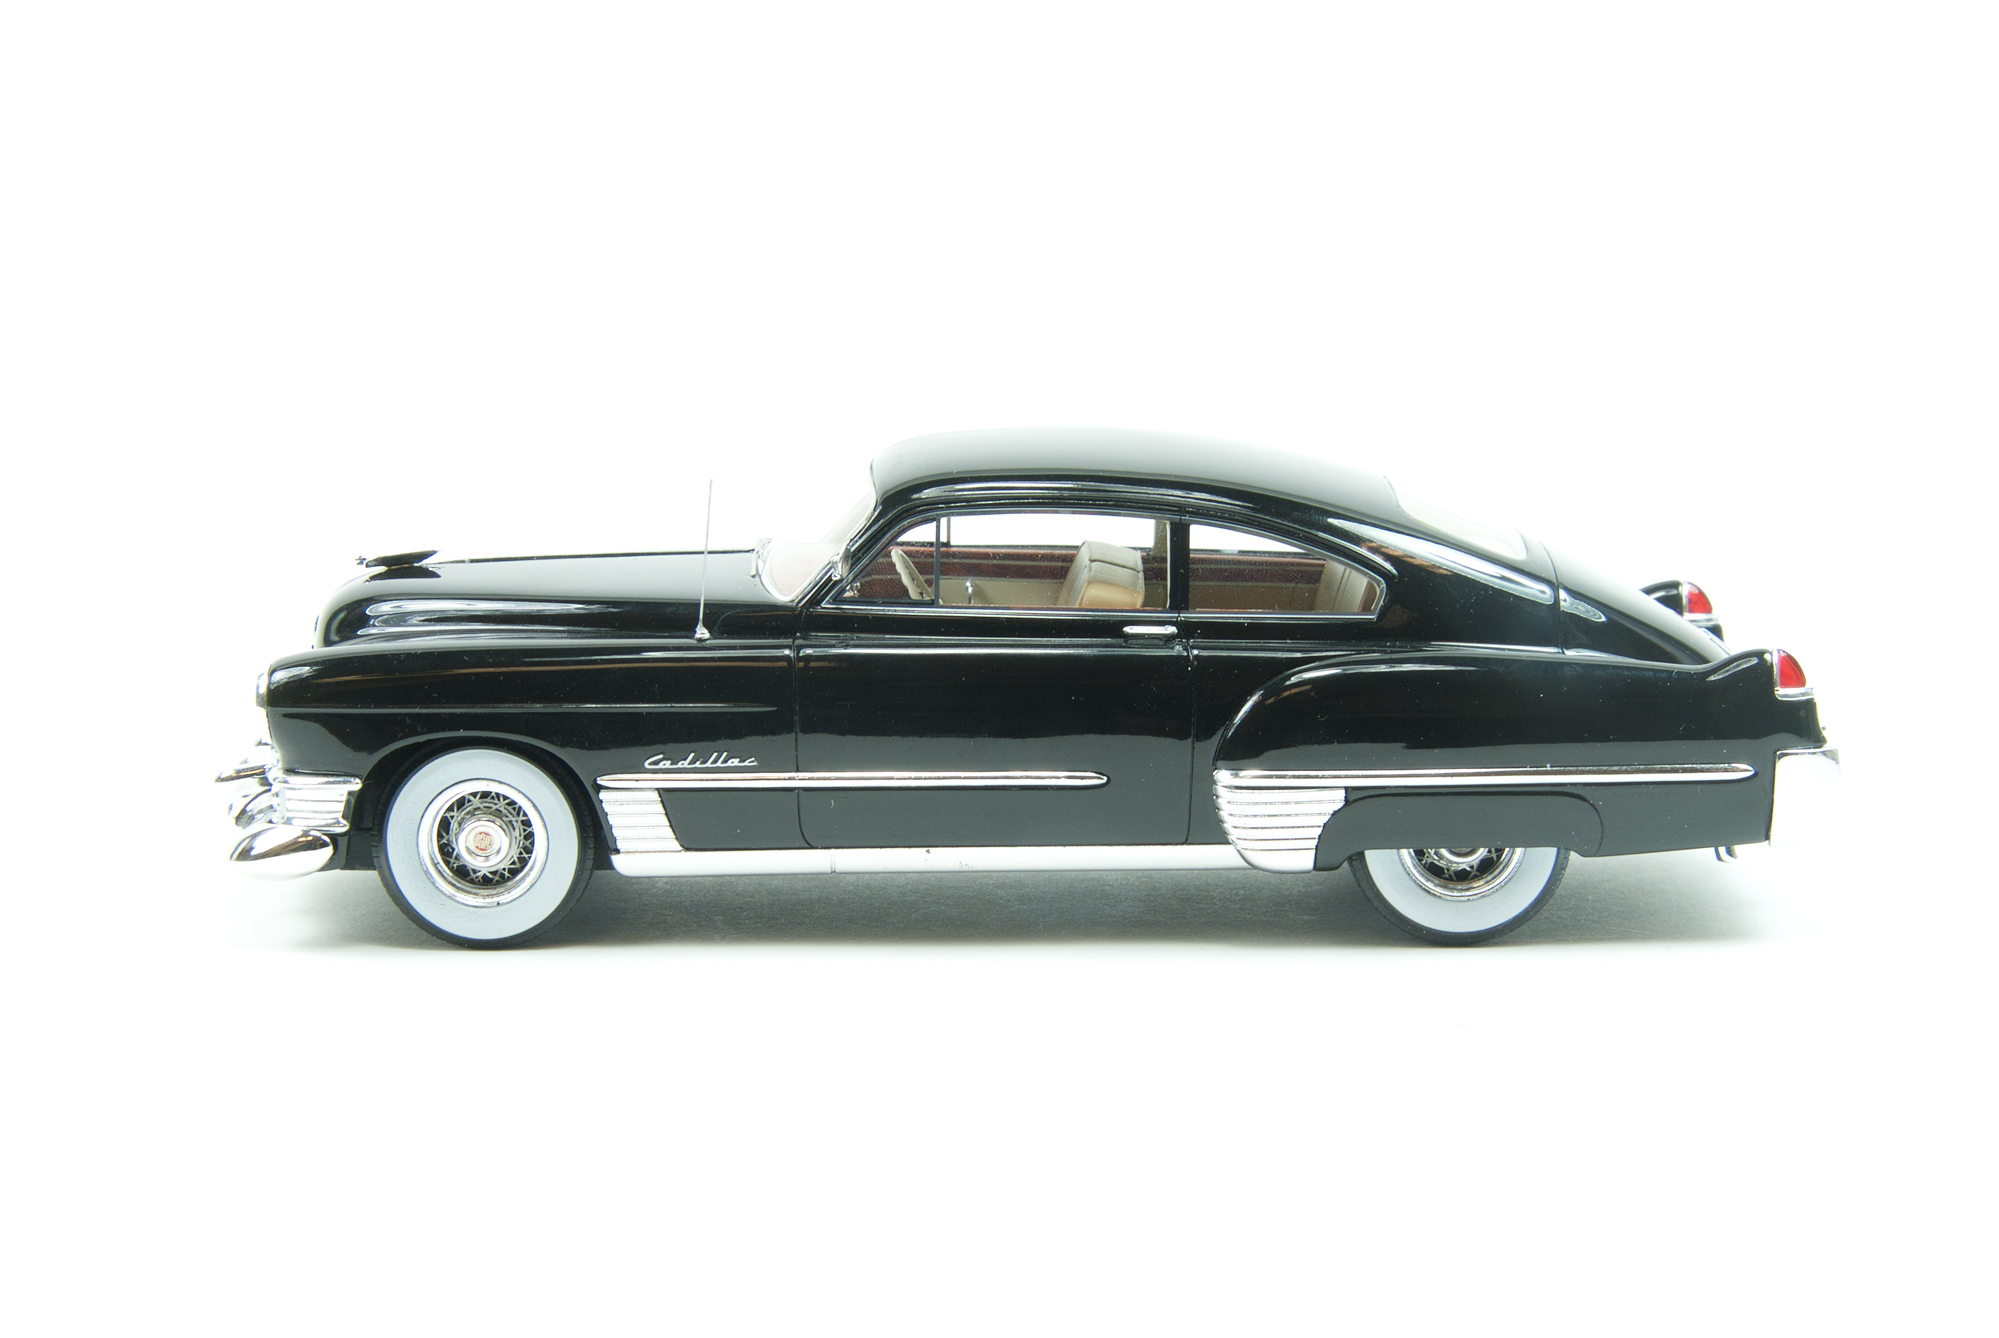 Die Cast Neos 1 24 Scale 1949 Cadillac Series 62 Club Coupe V8 Engine Neo